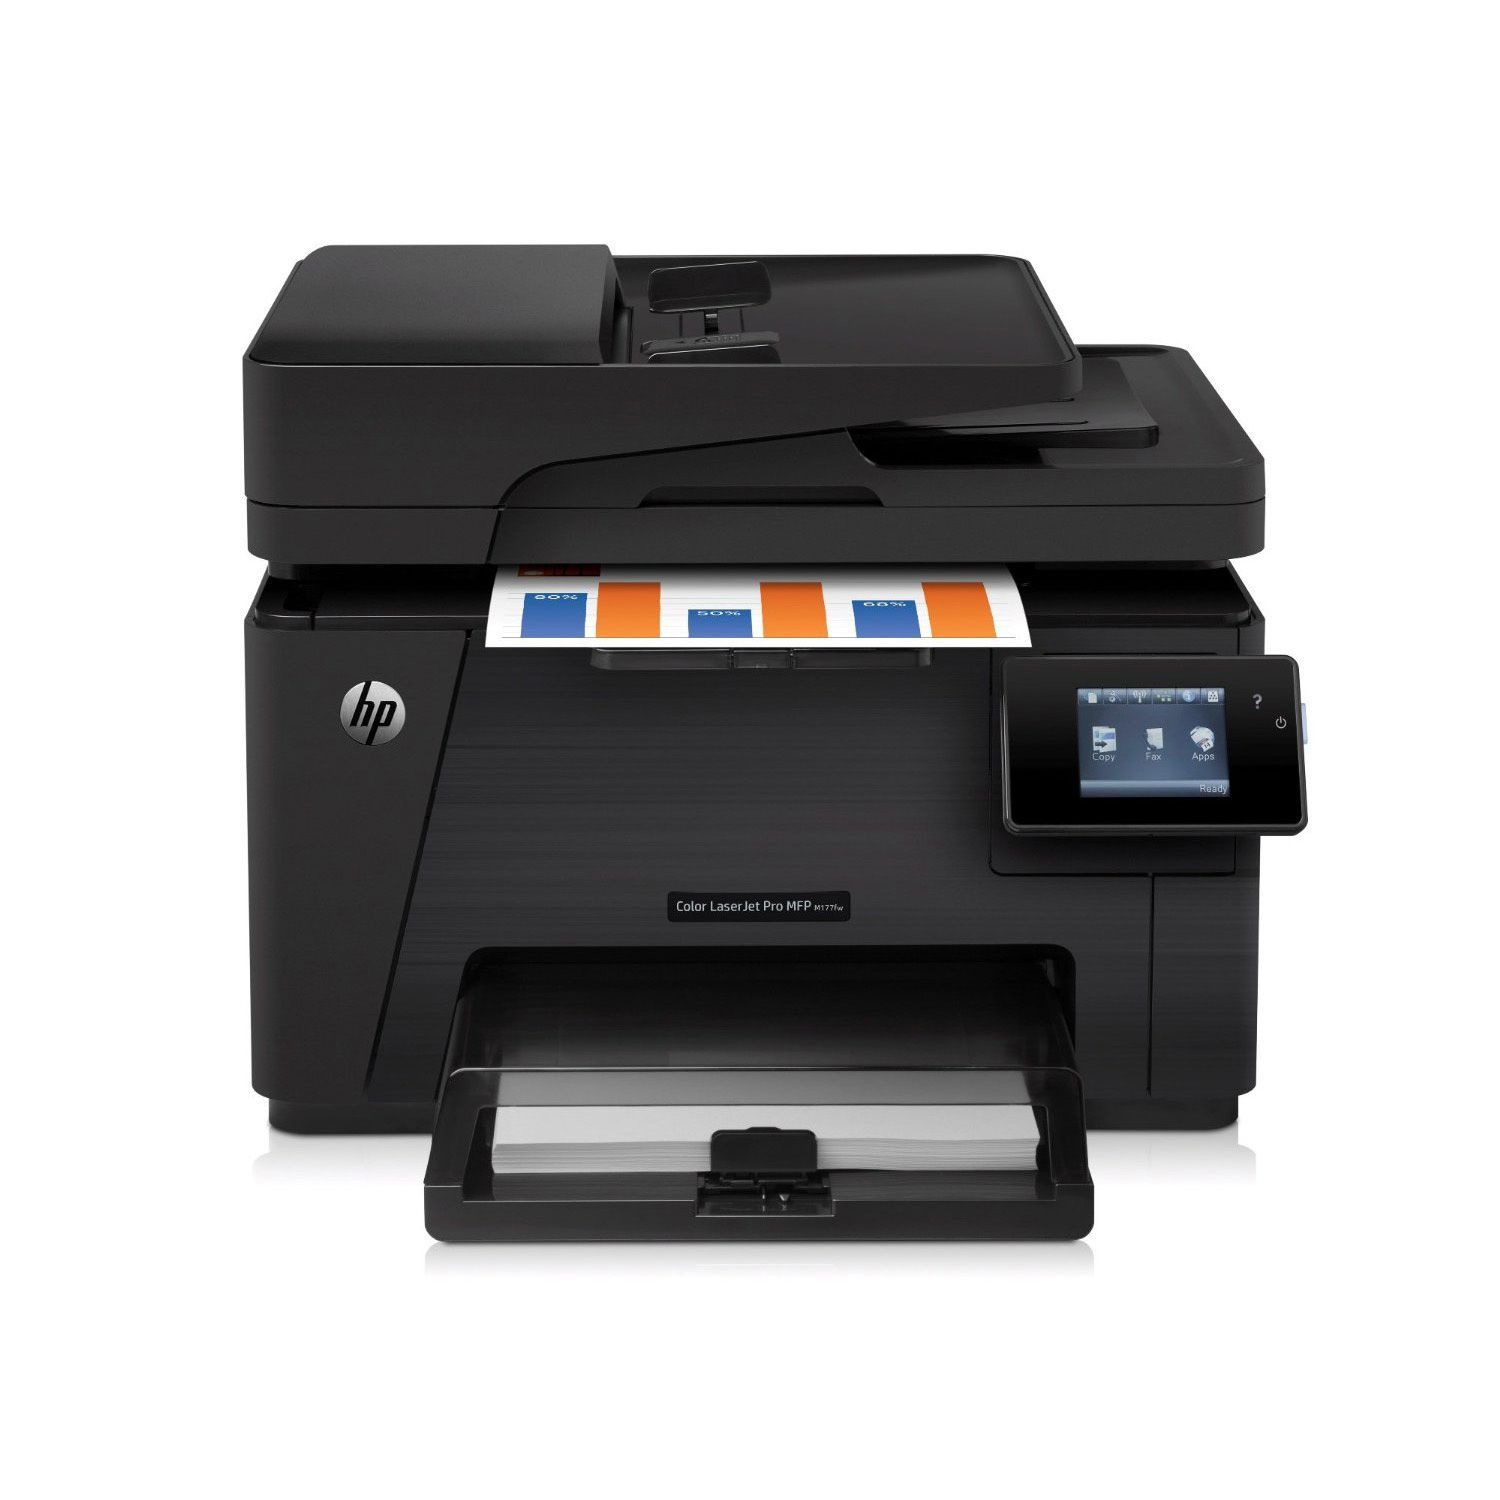 This Seems To Be The Cheapest Color Laser Printer I Can Find With Good Reviews